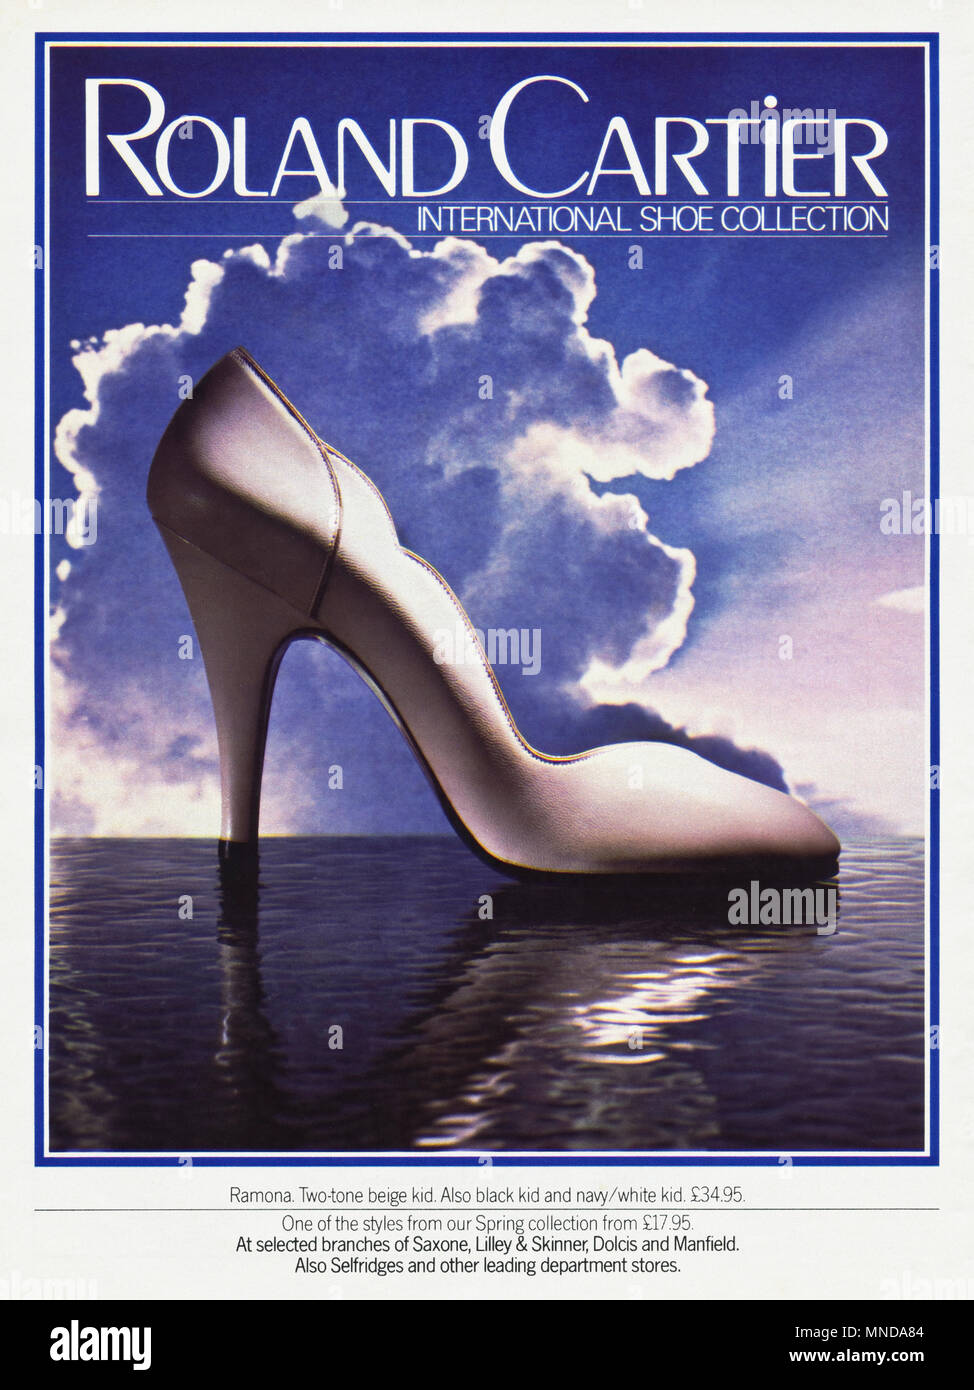 1980s original old vintage advertisement advertising Roland Cartier International shoe collection advert in English magazine circa 1980 - Stock Image